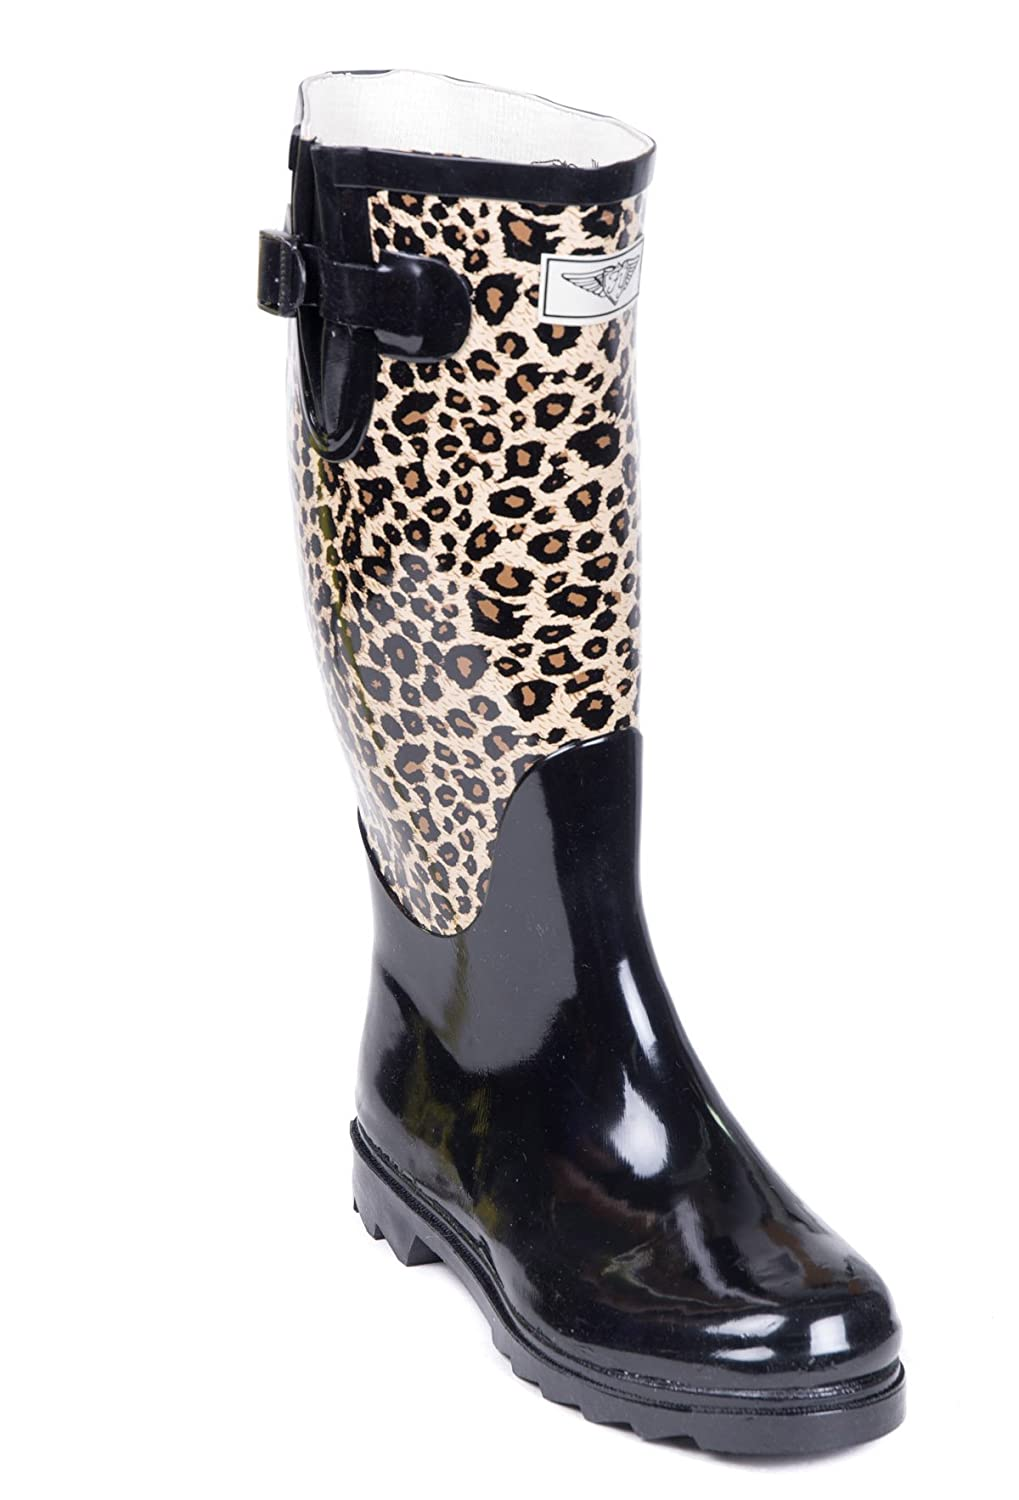 Forever Young Women Full Rubber Rain Boots, Animal/Black, 10 US